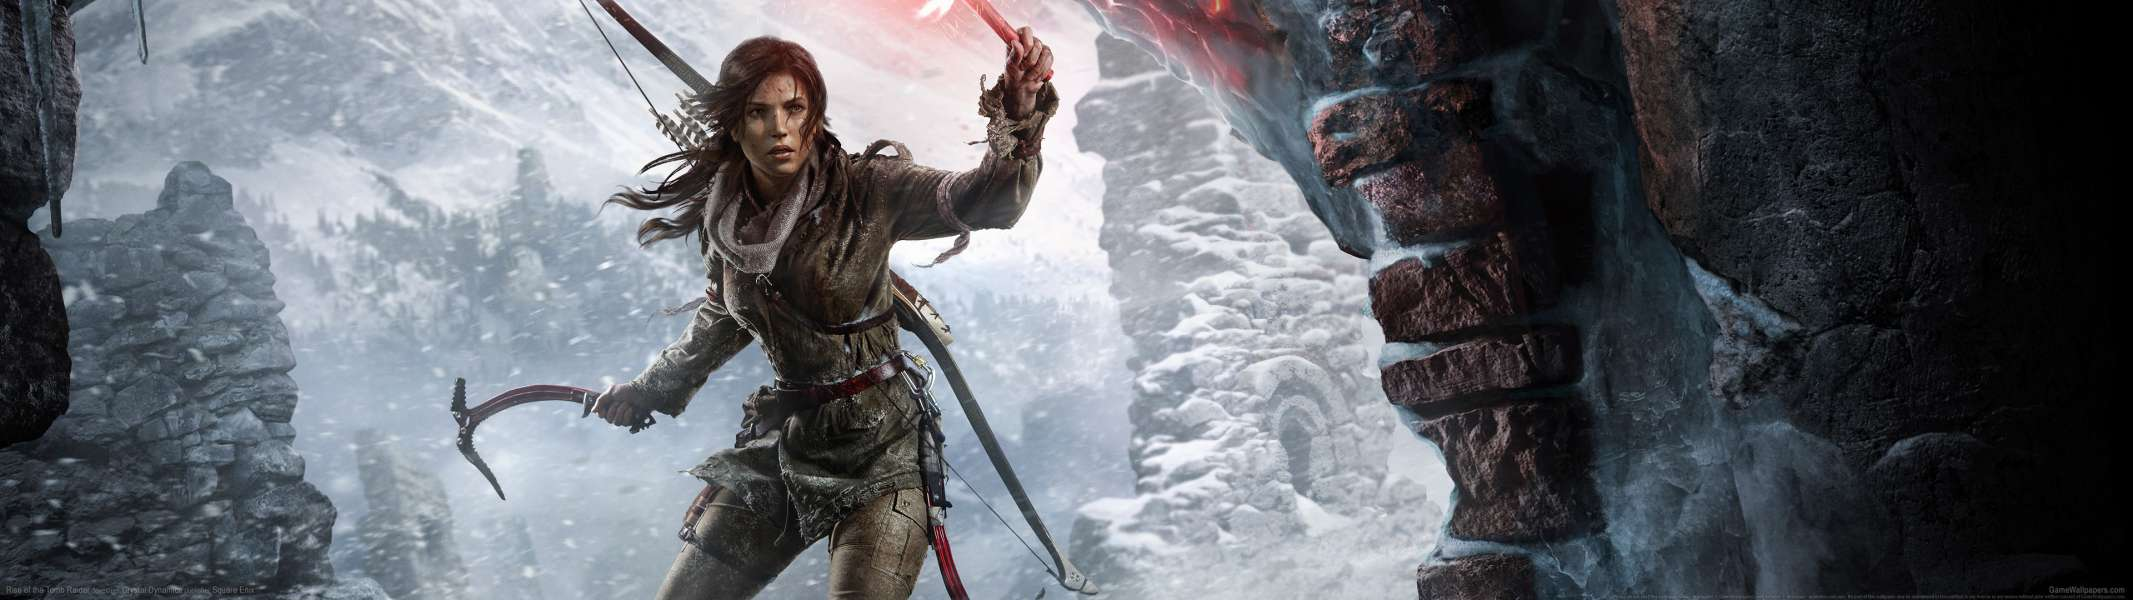 Rise of the Tomb Raider dual screen wallpaper or background